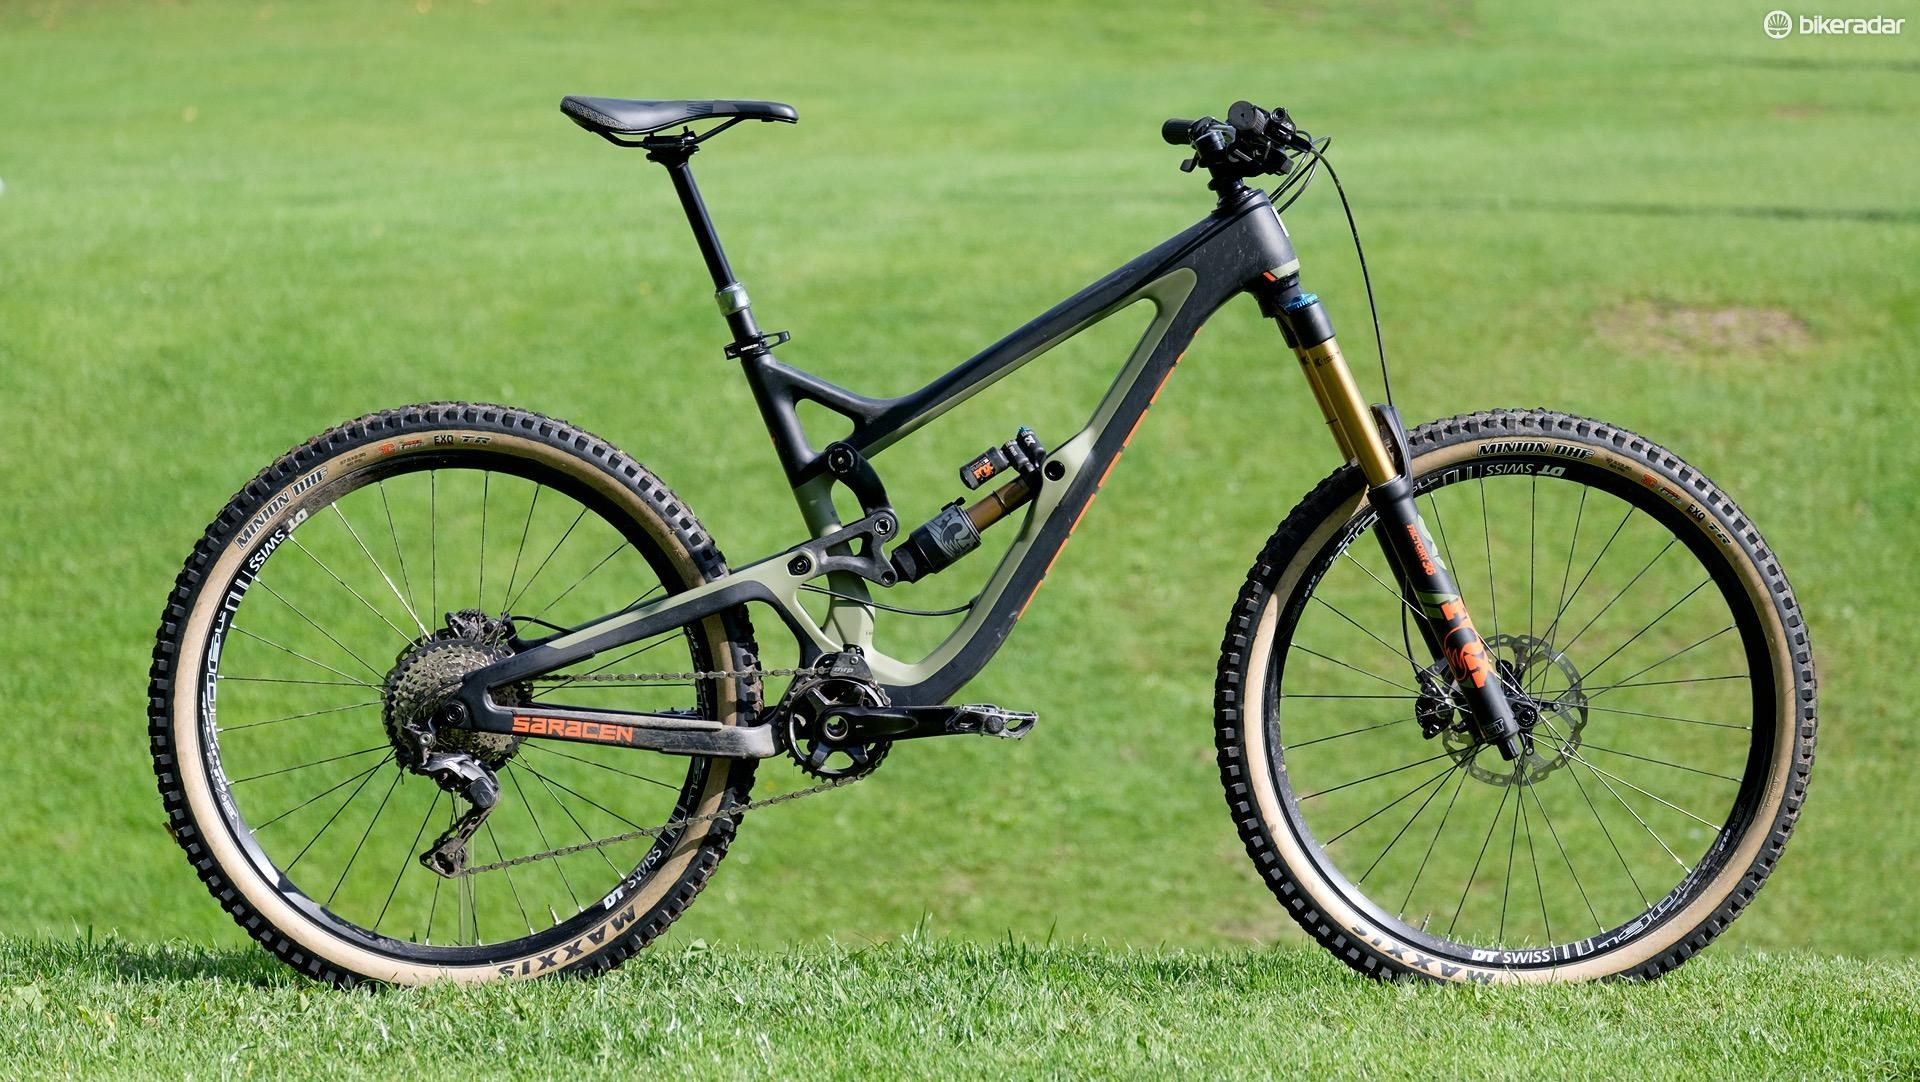 The Ariel LT is Saracen's brand new full-carbon long travel trail/enduro bike. The full build as shown here retails for £4,999.99